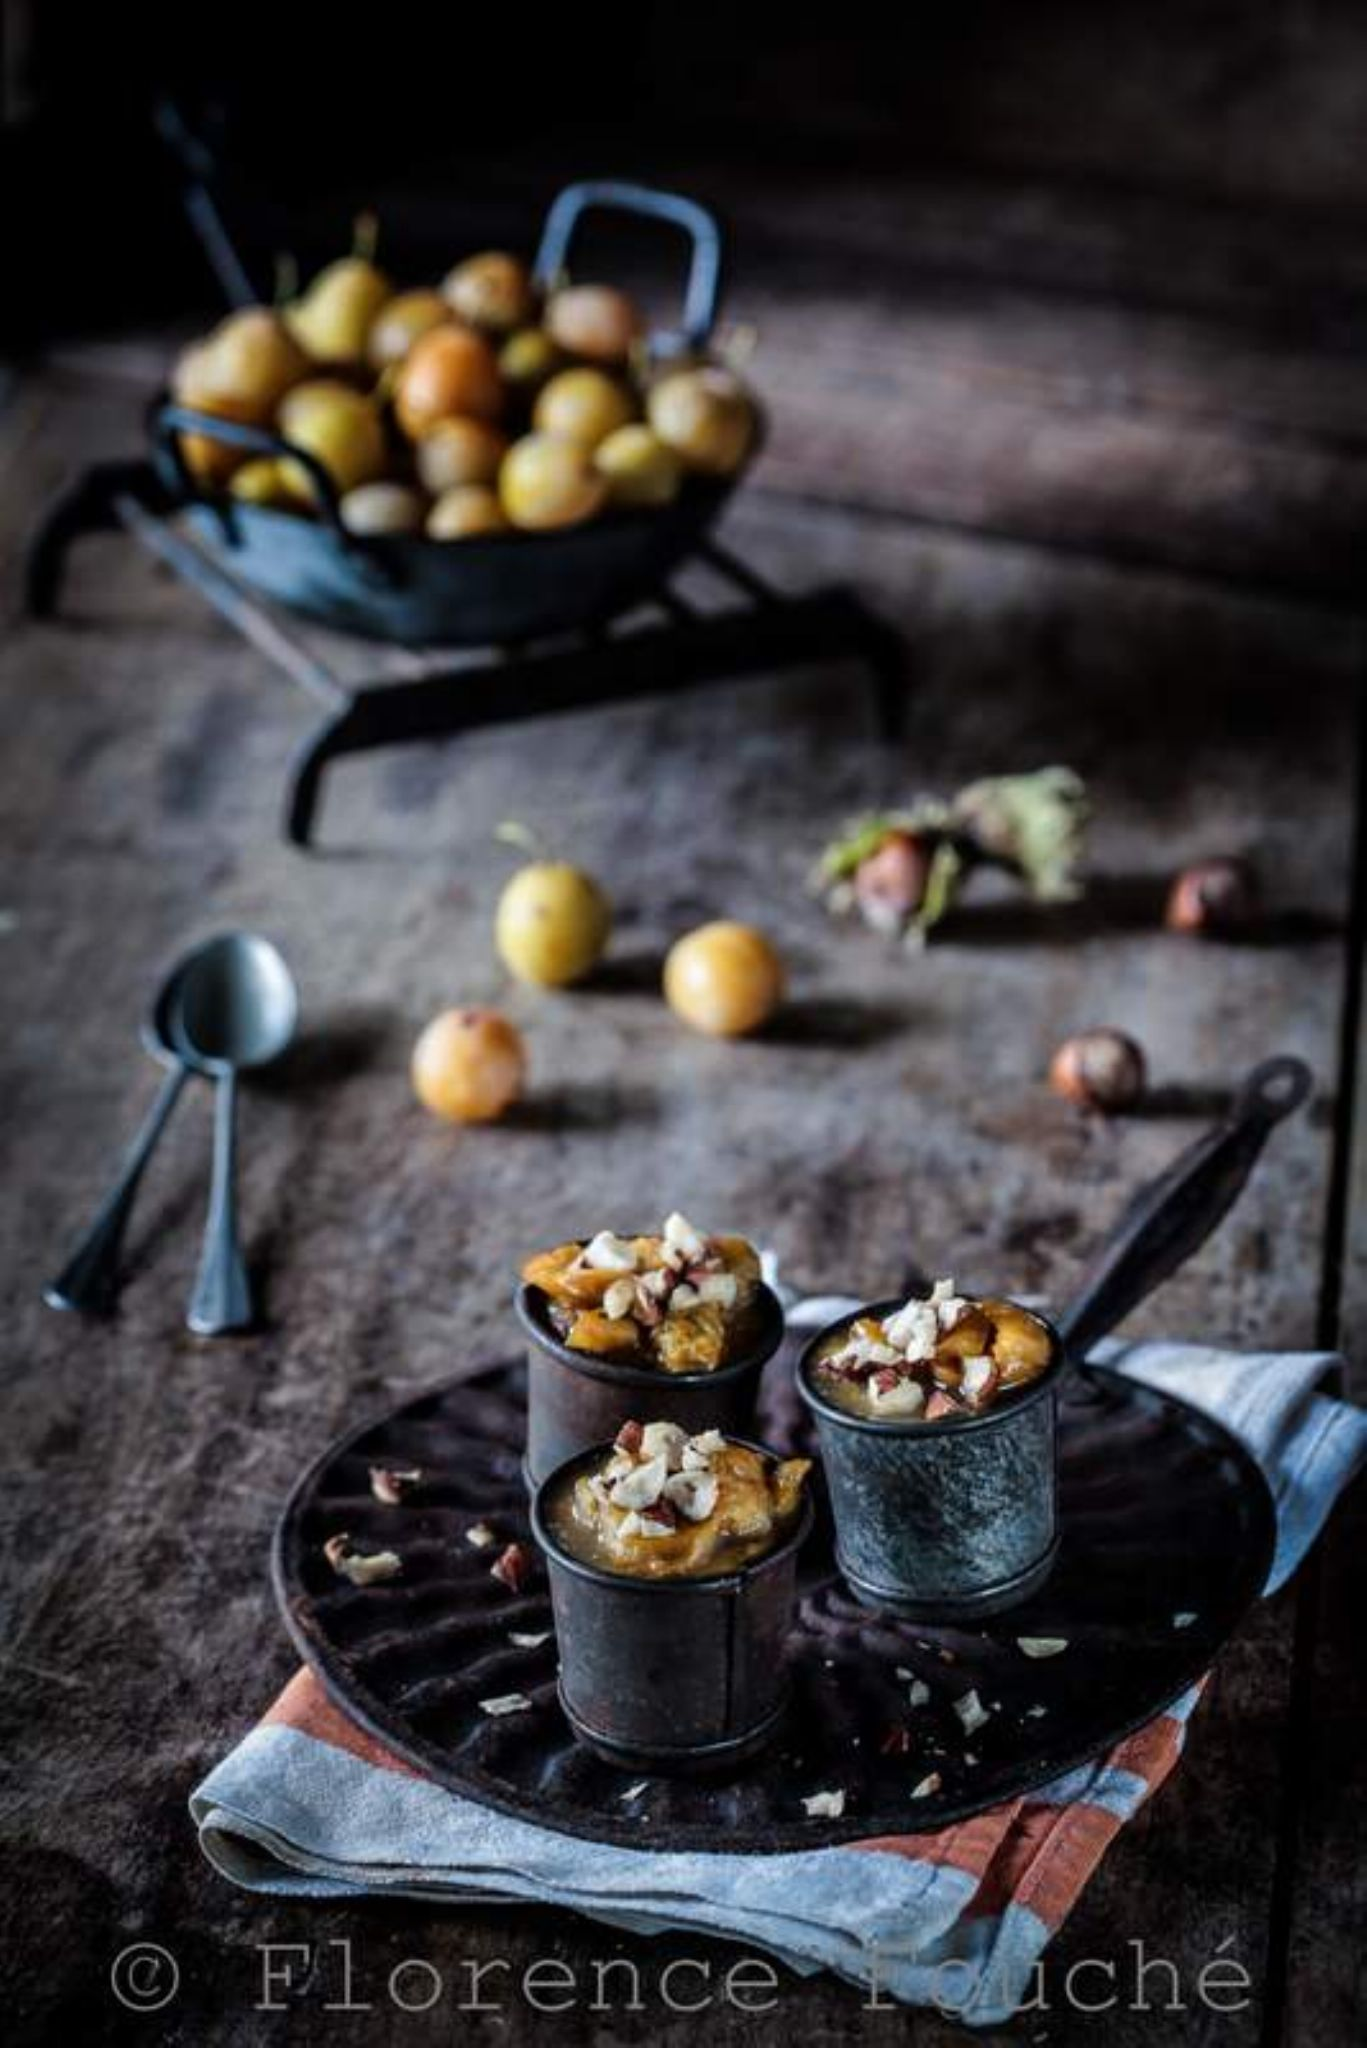 Stewed plums & hazelnuts by Florence Fouché